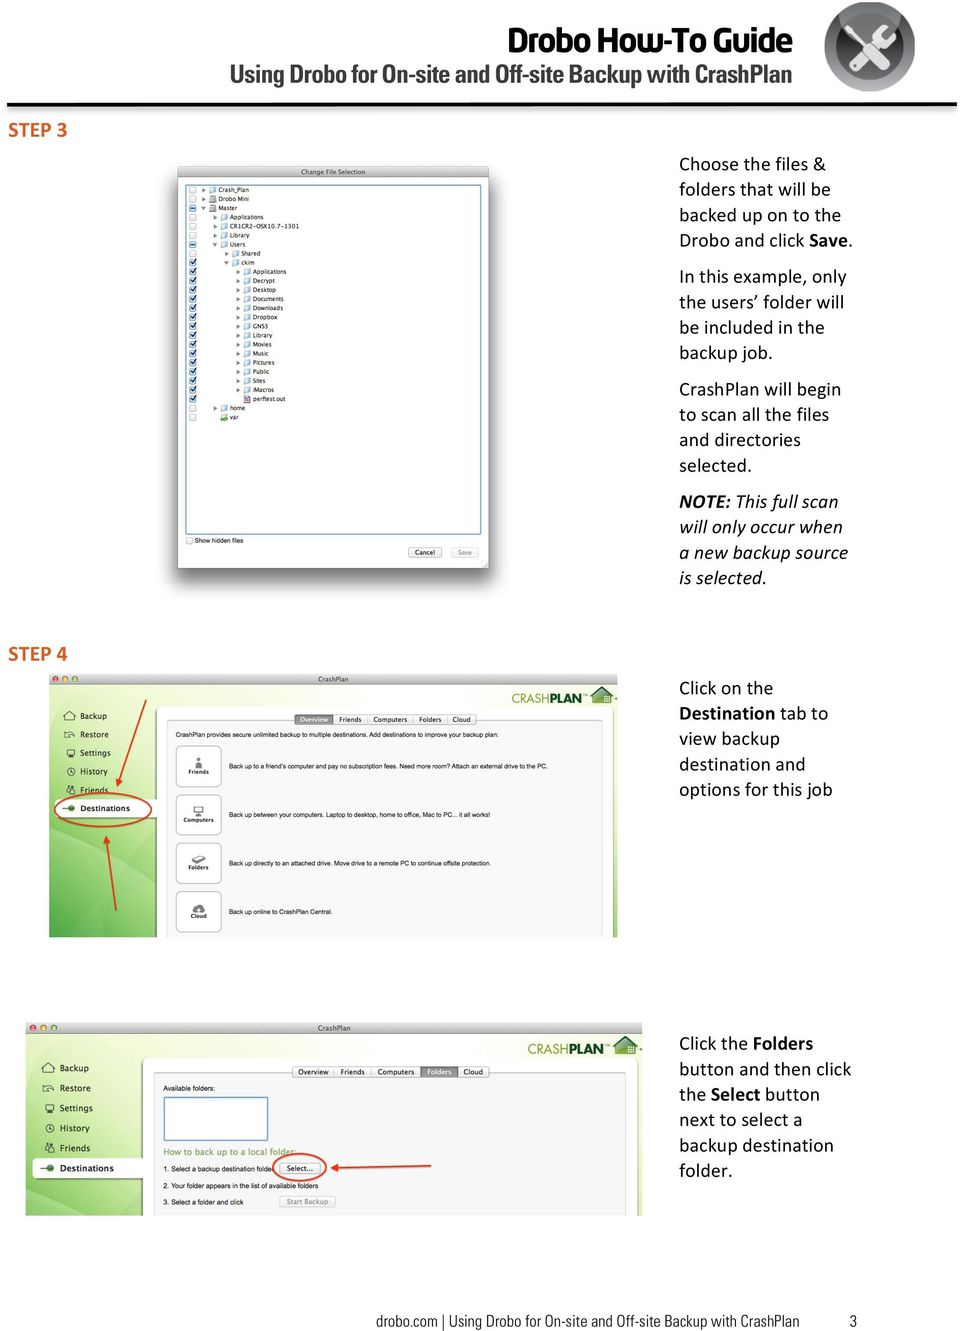 CrashPlan will begin to scan all the files and directories selected.